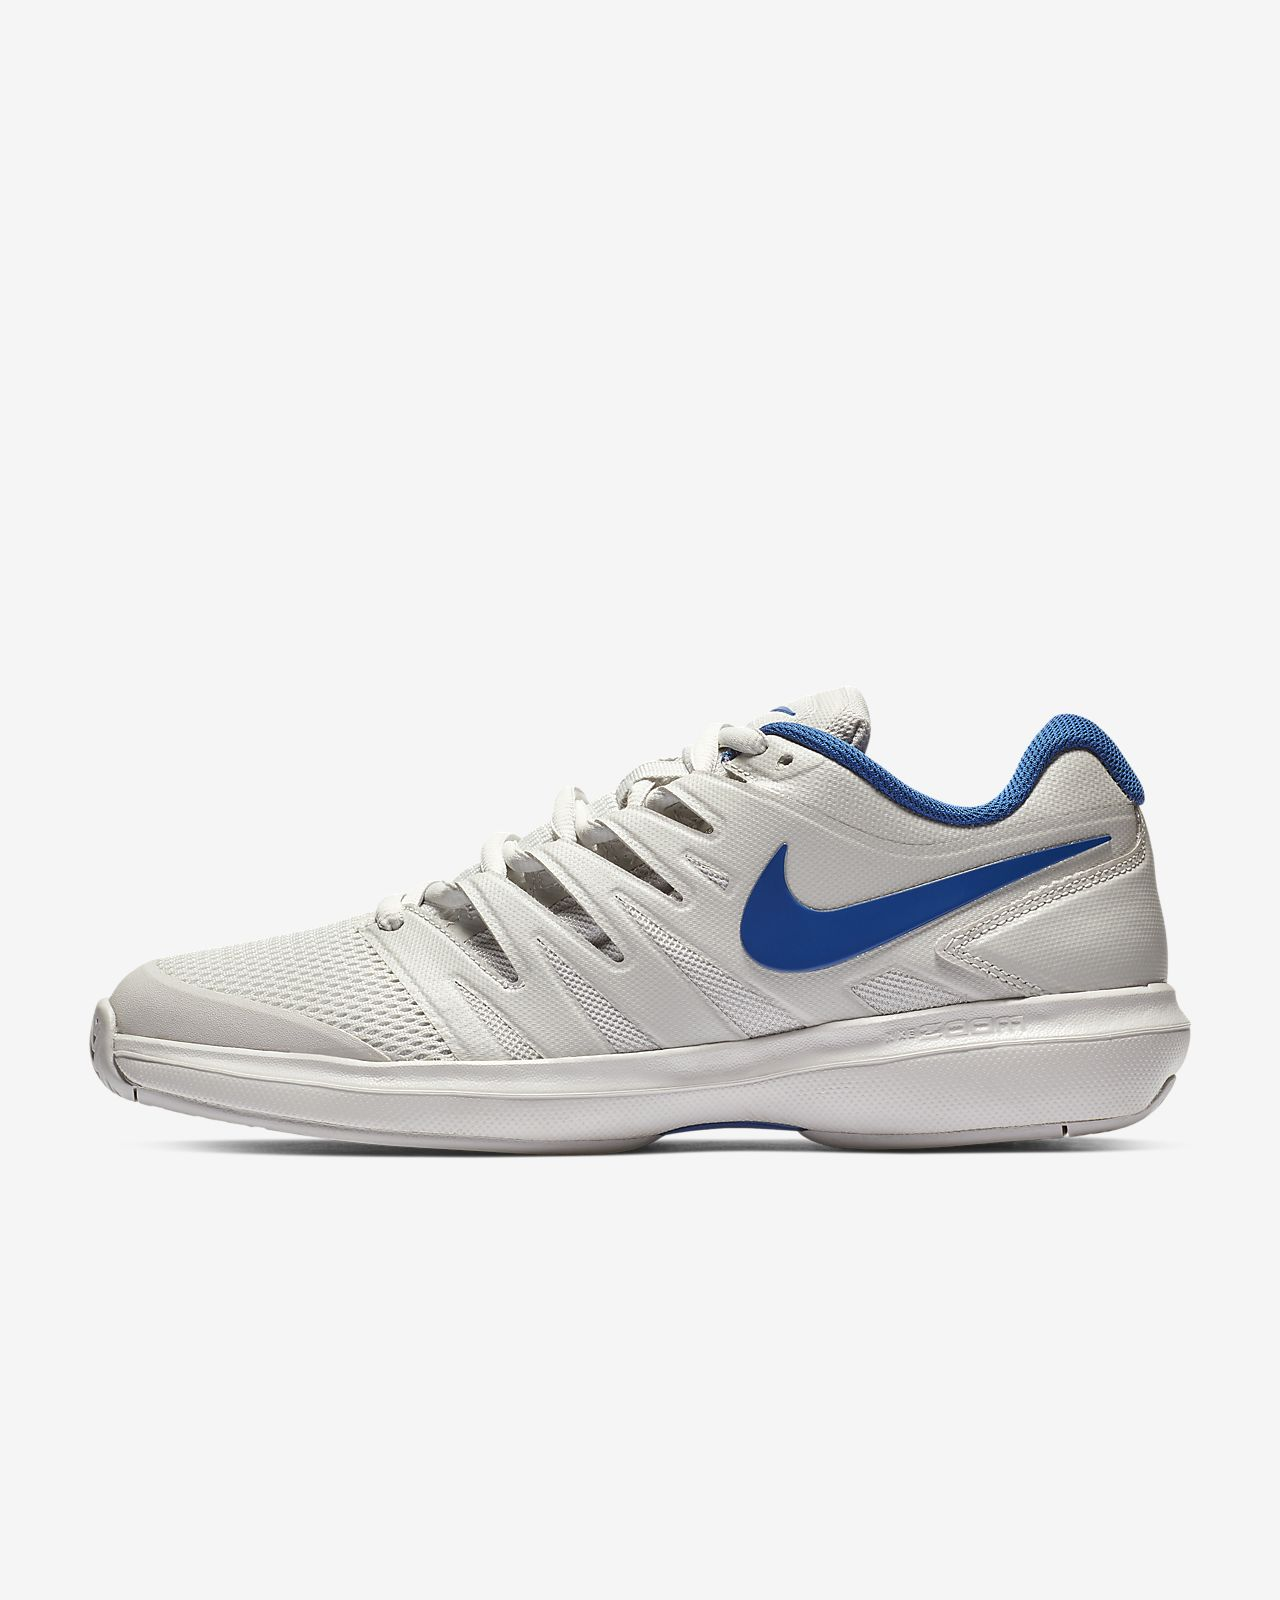 Prestige Air Tennis Court Zoom Nikecourt Men's Shoe Hard nx46wTTY